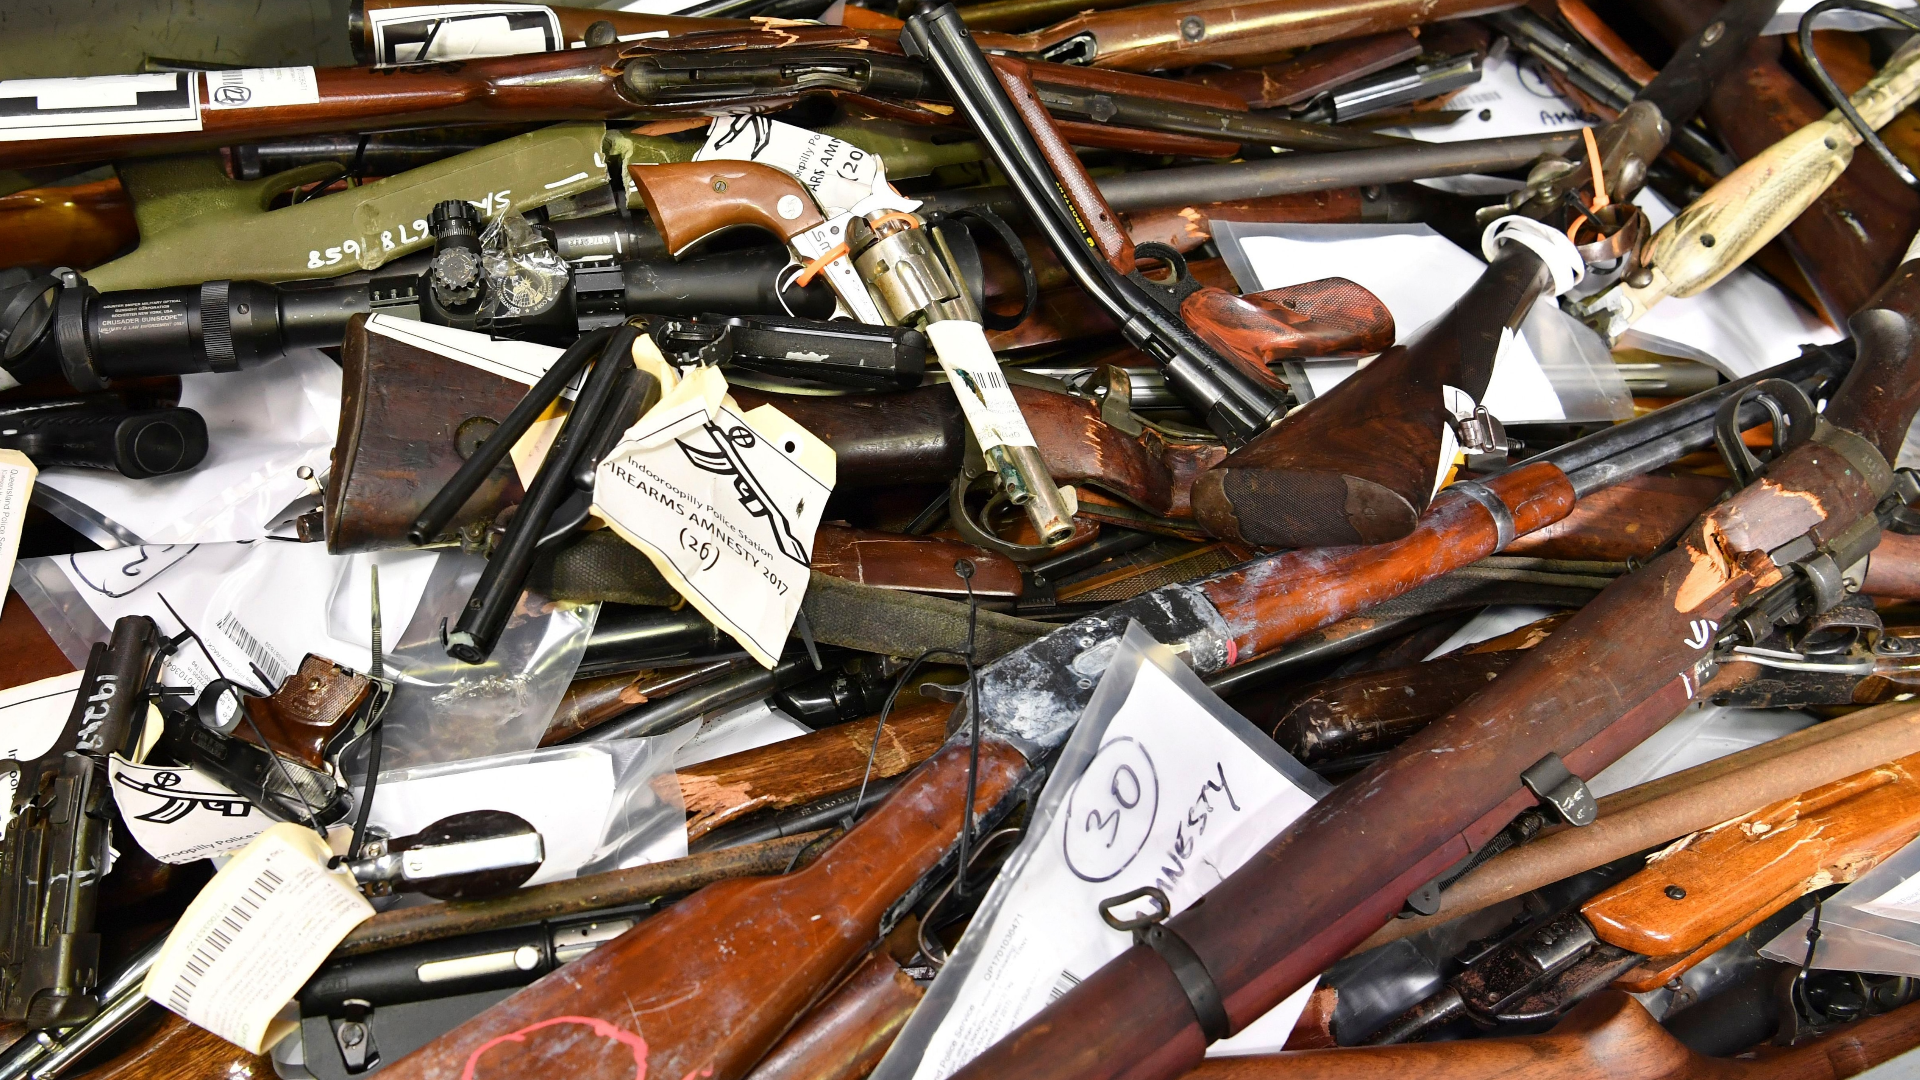 As U.S. gun debate rages on, Australians hand in 57,000 firearms, and Norway is set for a broad ban